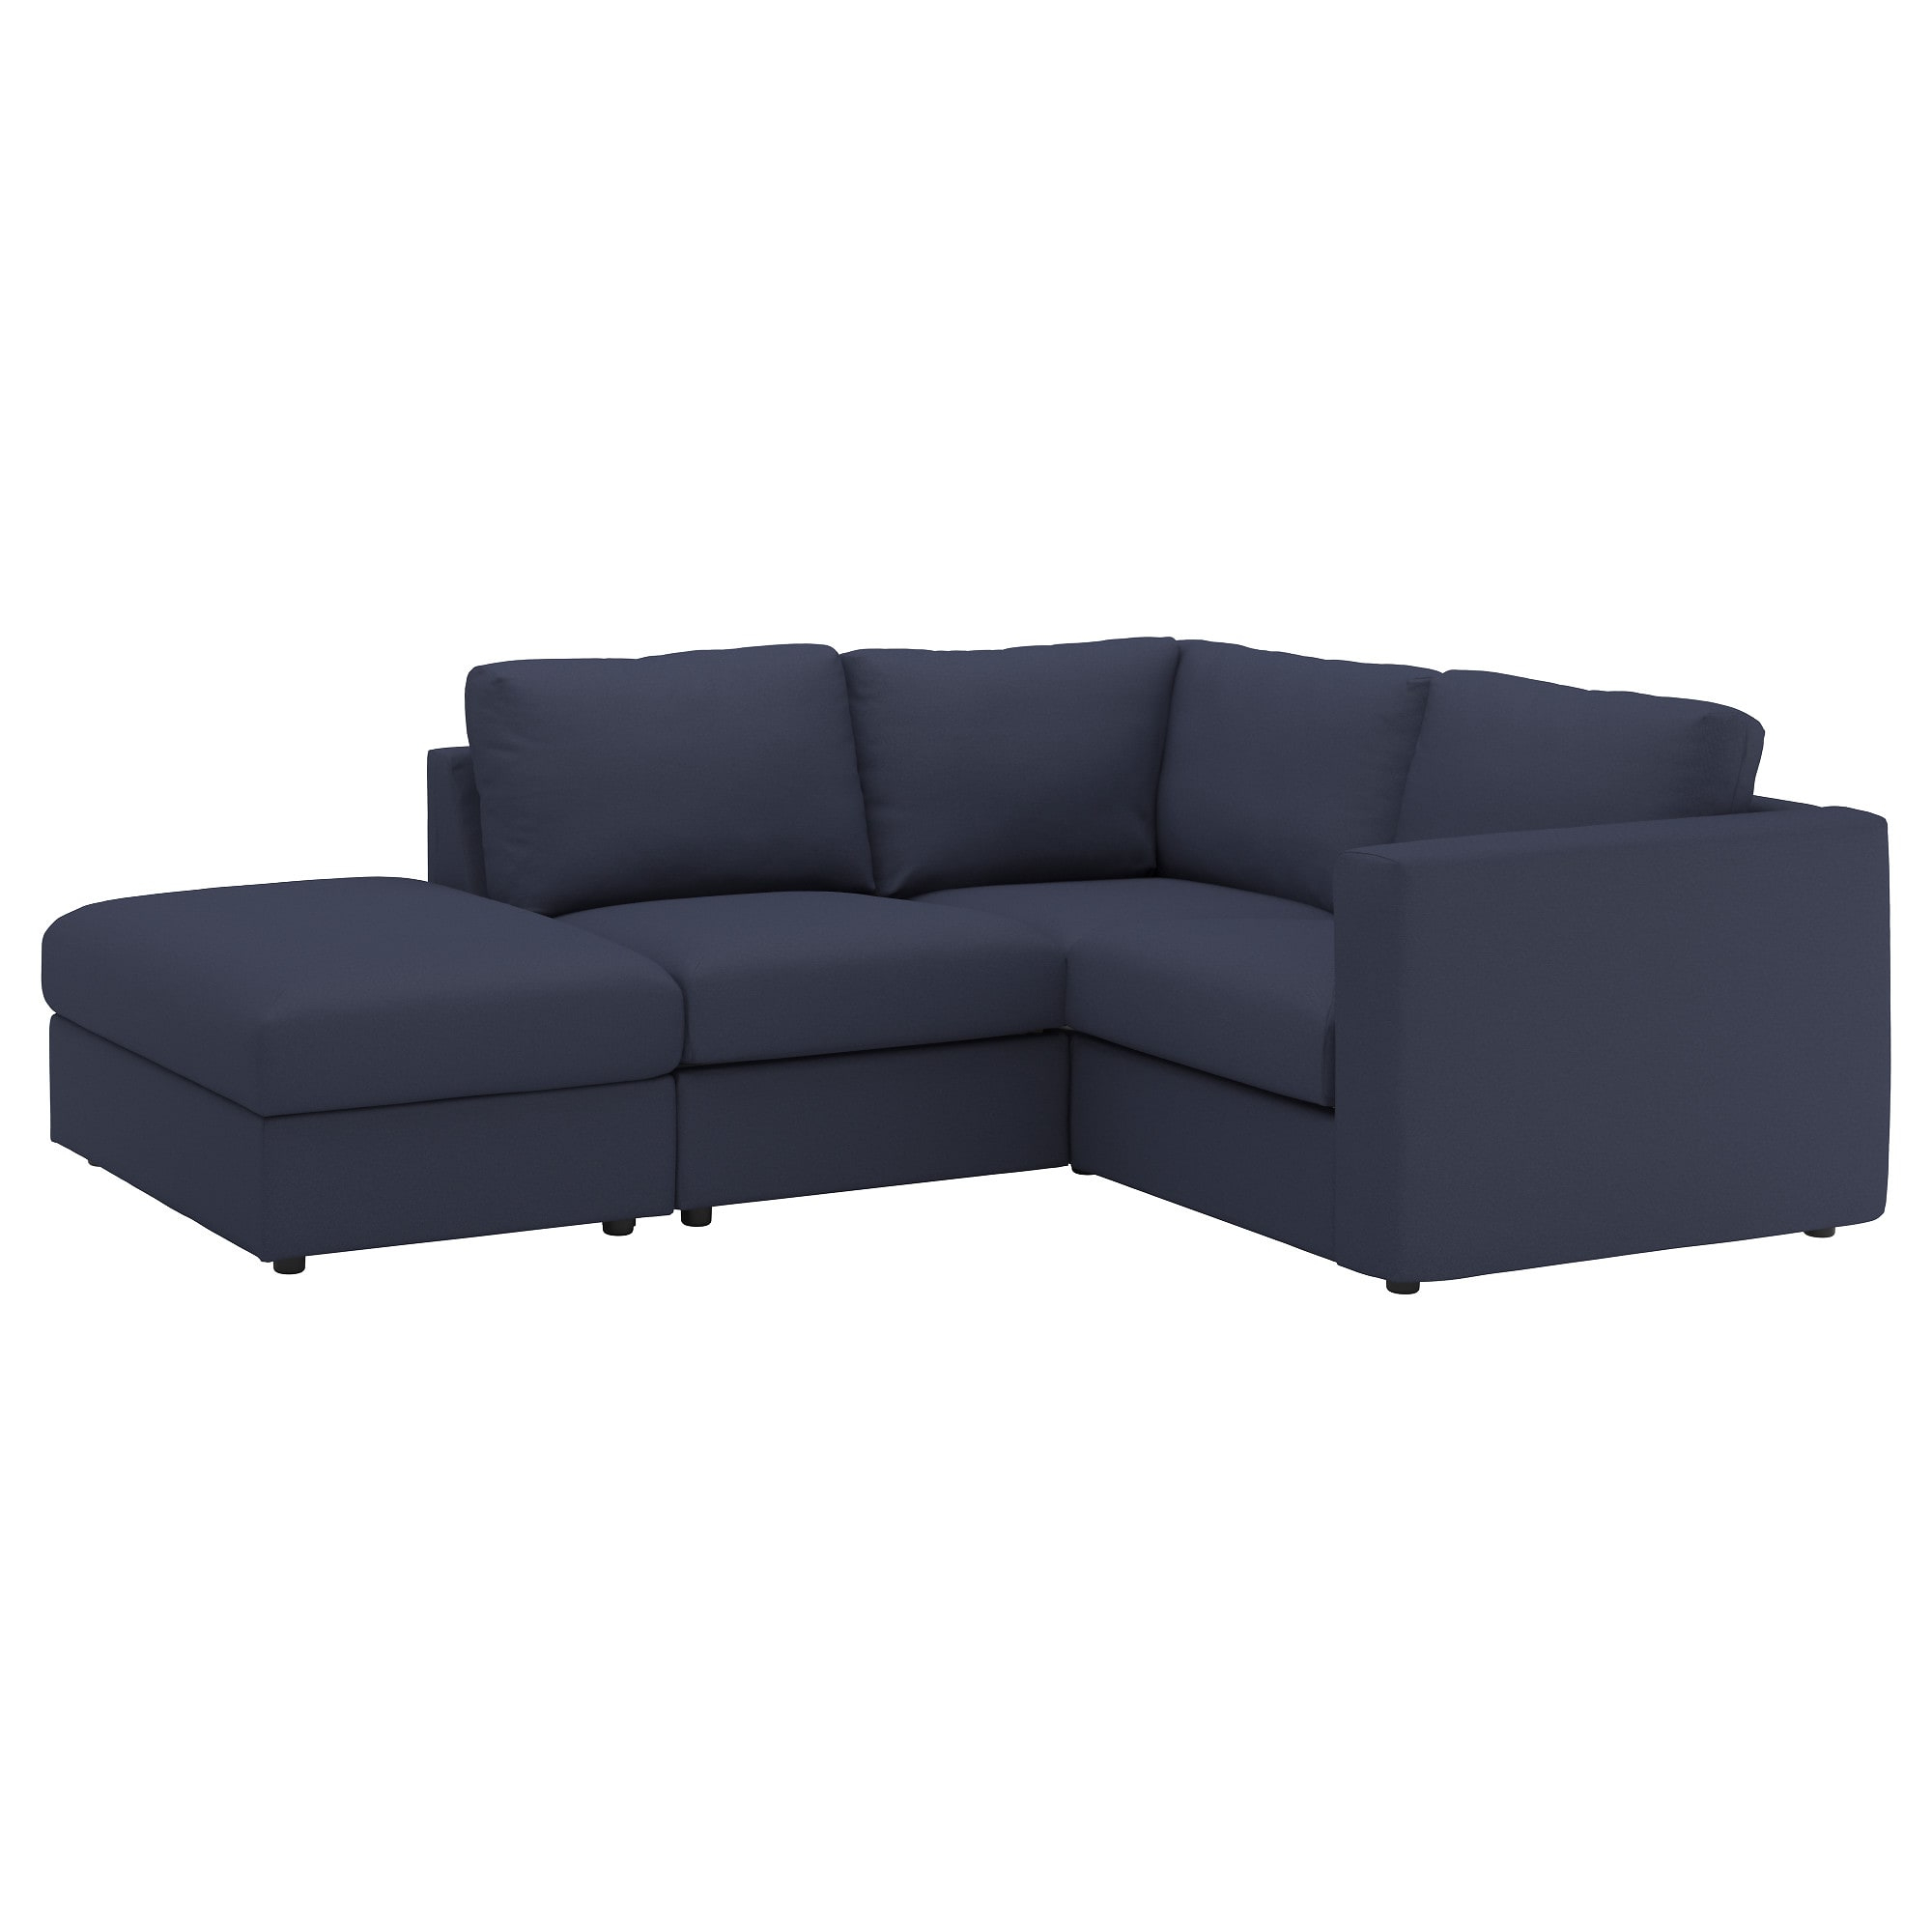 Latest Vimle Sectional, 3 Seat Corner – With Open End/orrsta Black Blue – Ikea With Haven Blue Steel 3 Piece Sectionals (View 9 of 20)